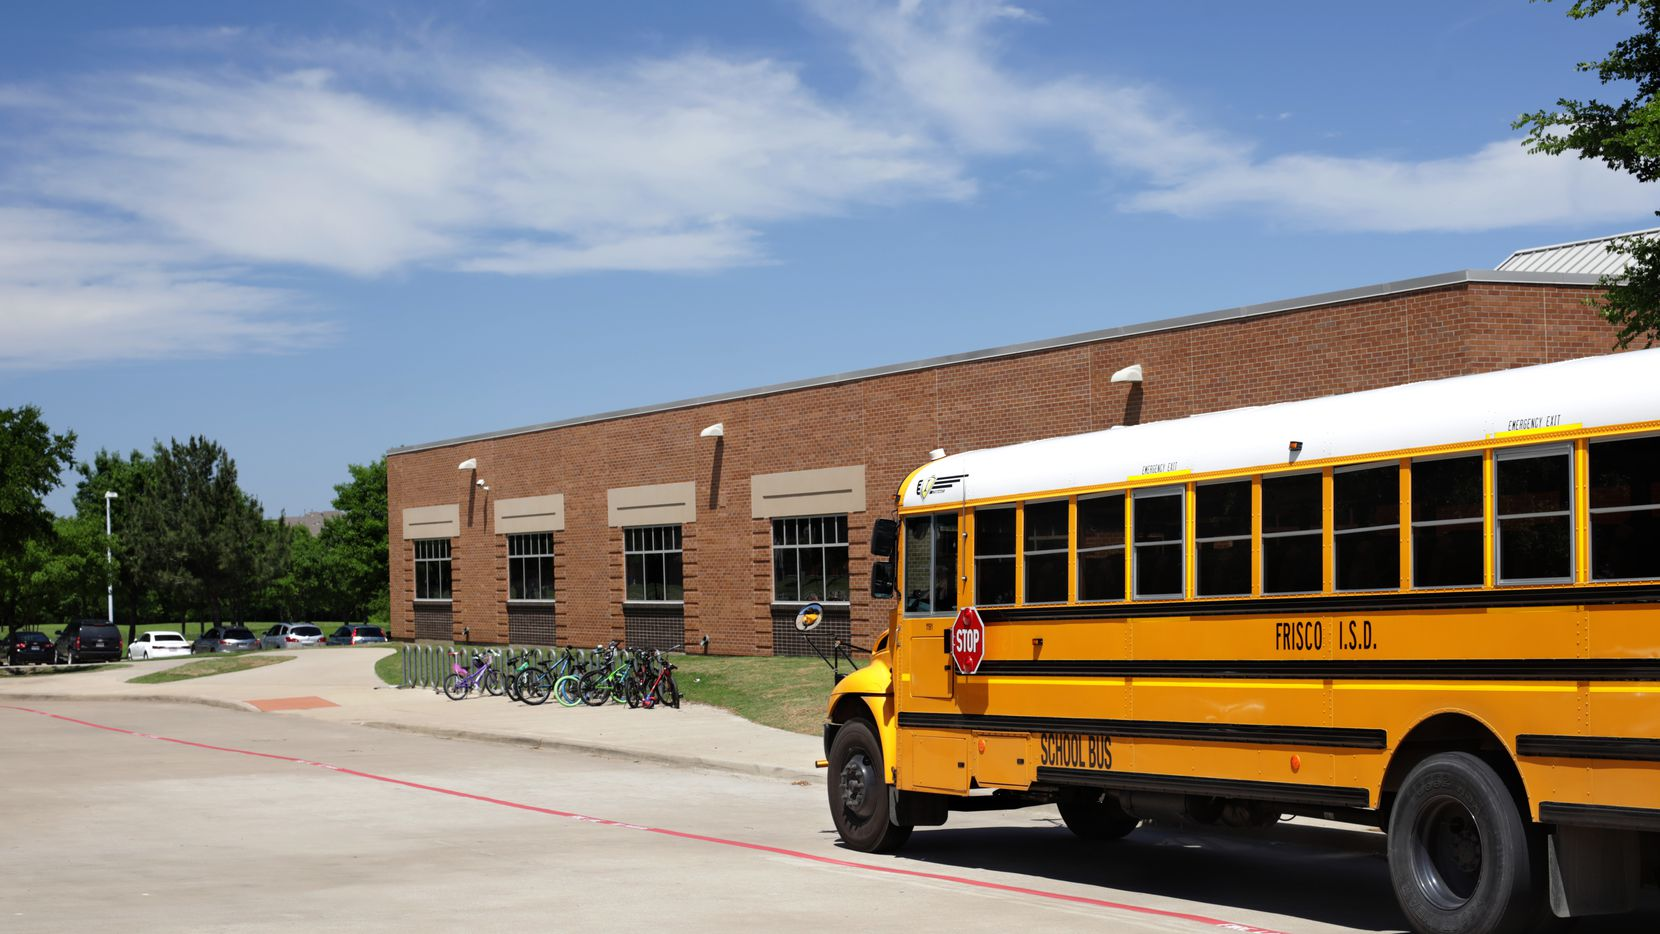 Online learning was disrupted for several North Texas school districts, including Frisco ISD, Thursday morning, when a hardware problem at a regional Education Service Center caused internet connectivity issues.